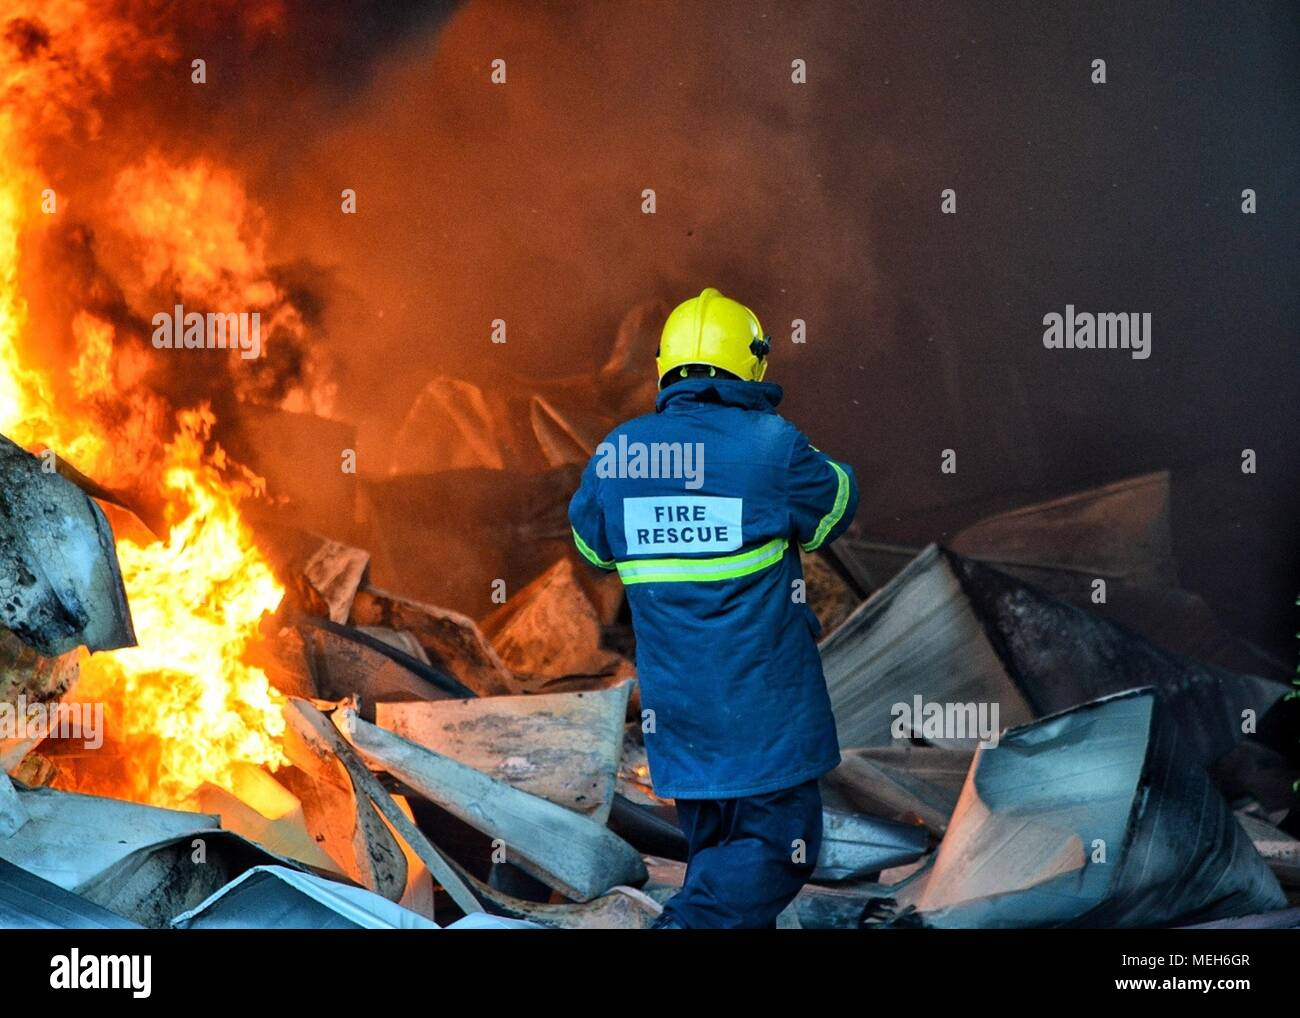 Firefighter battling with fire, fire rescue looking for survivor. Huge flames burned a recycling company in Tirana, fireman extinguishing the blaze - Stock Image